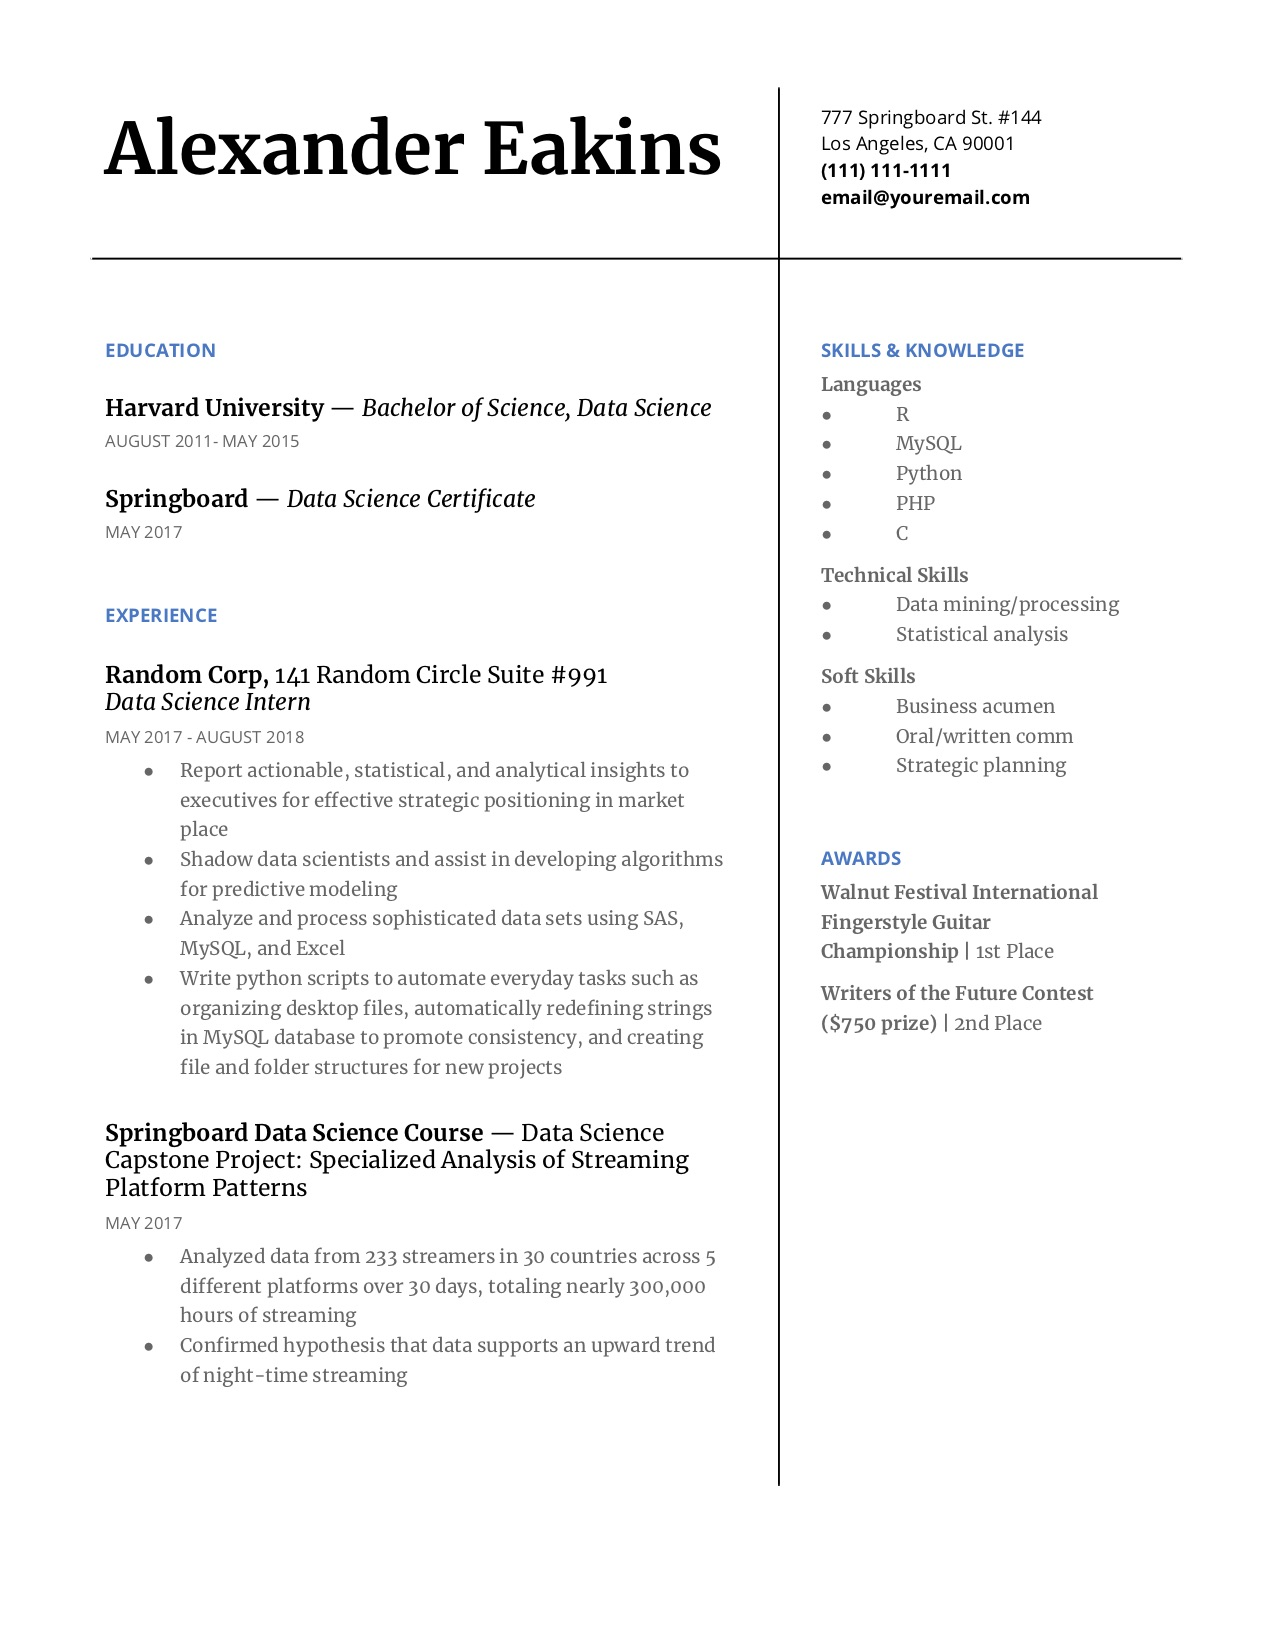 step guide to make your data science resume pop springboard blog entry level analyst new Resume Entry Level Data Analyst Resume